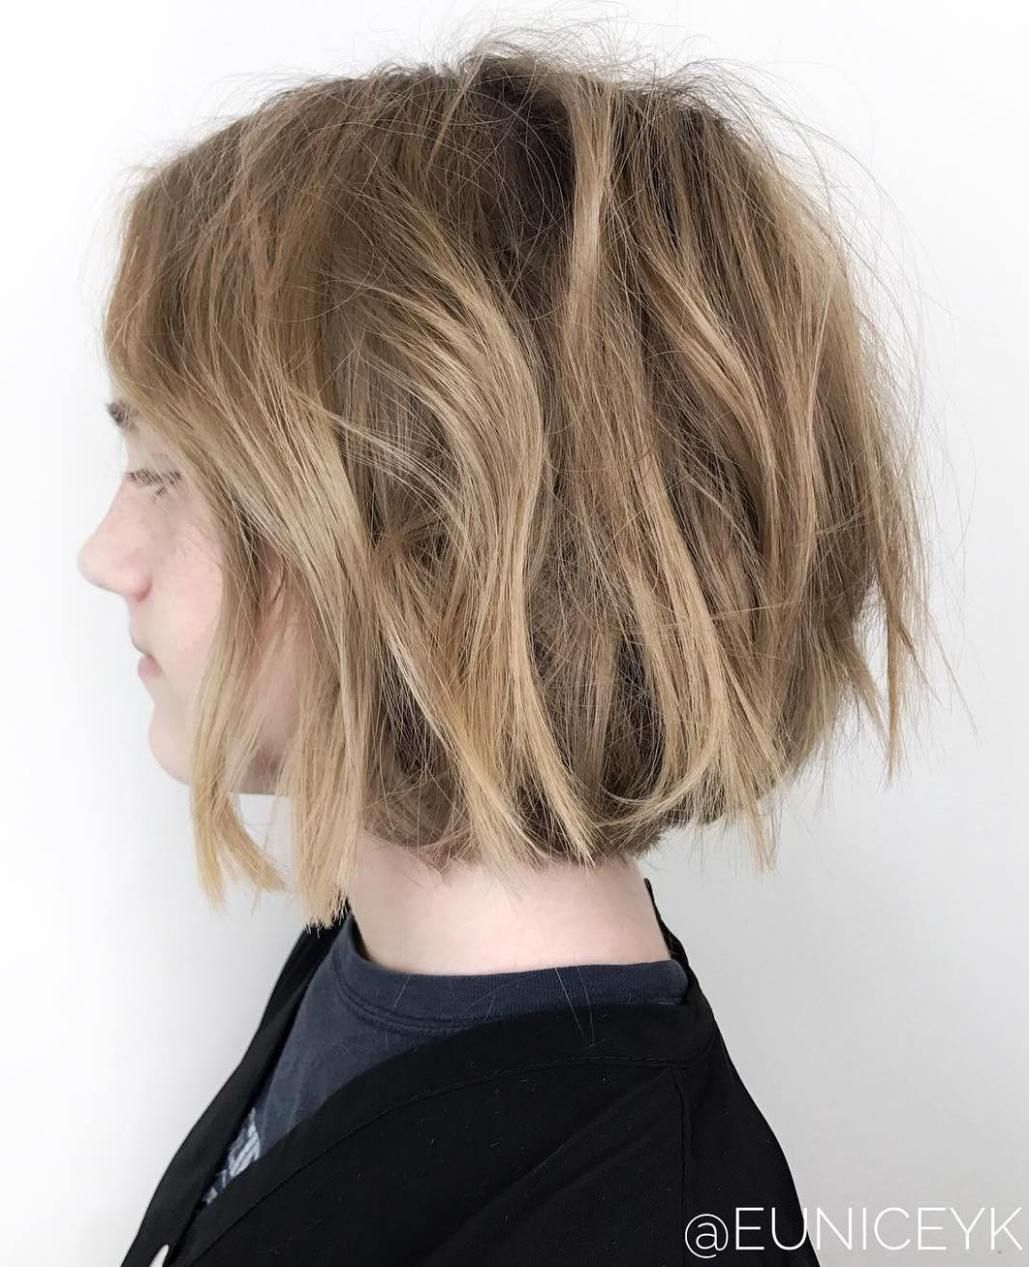 50 Cute Haircuts For Girls To Put You On Center Stage Girls Short Haircuts Girl Haircuts Teenage Hairstyles